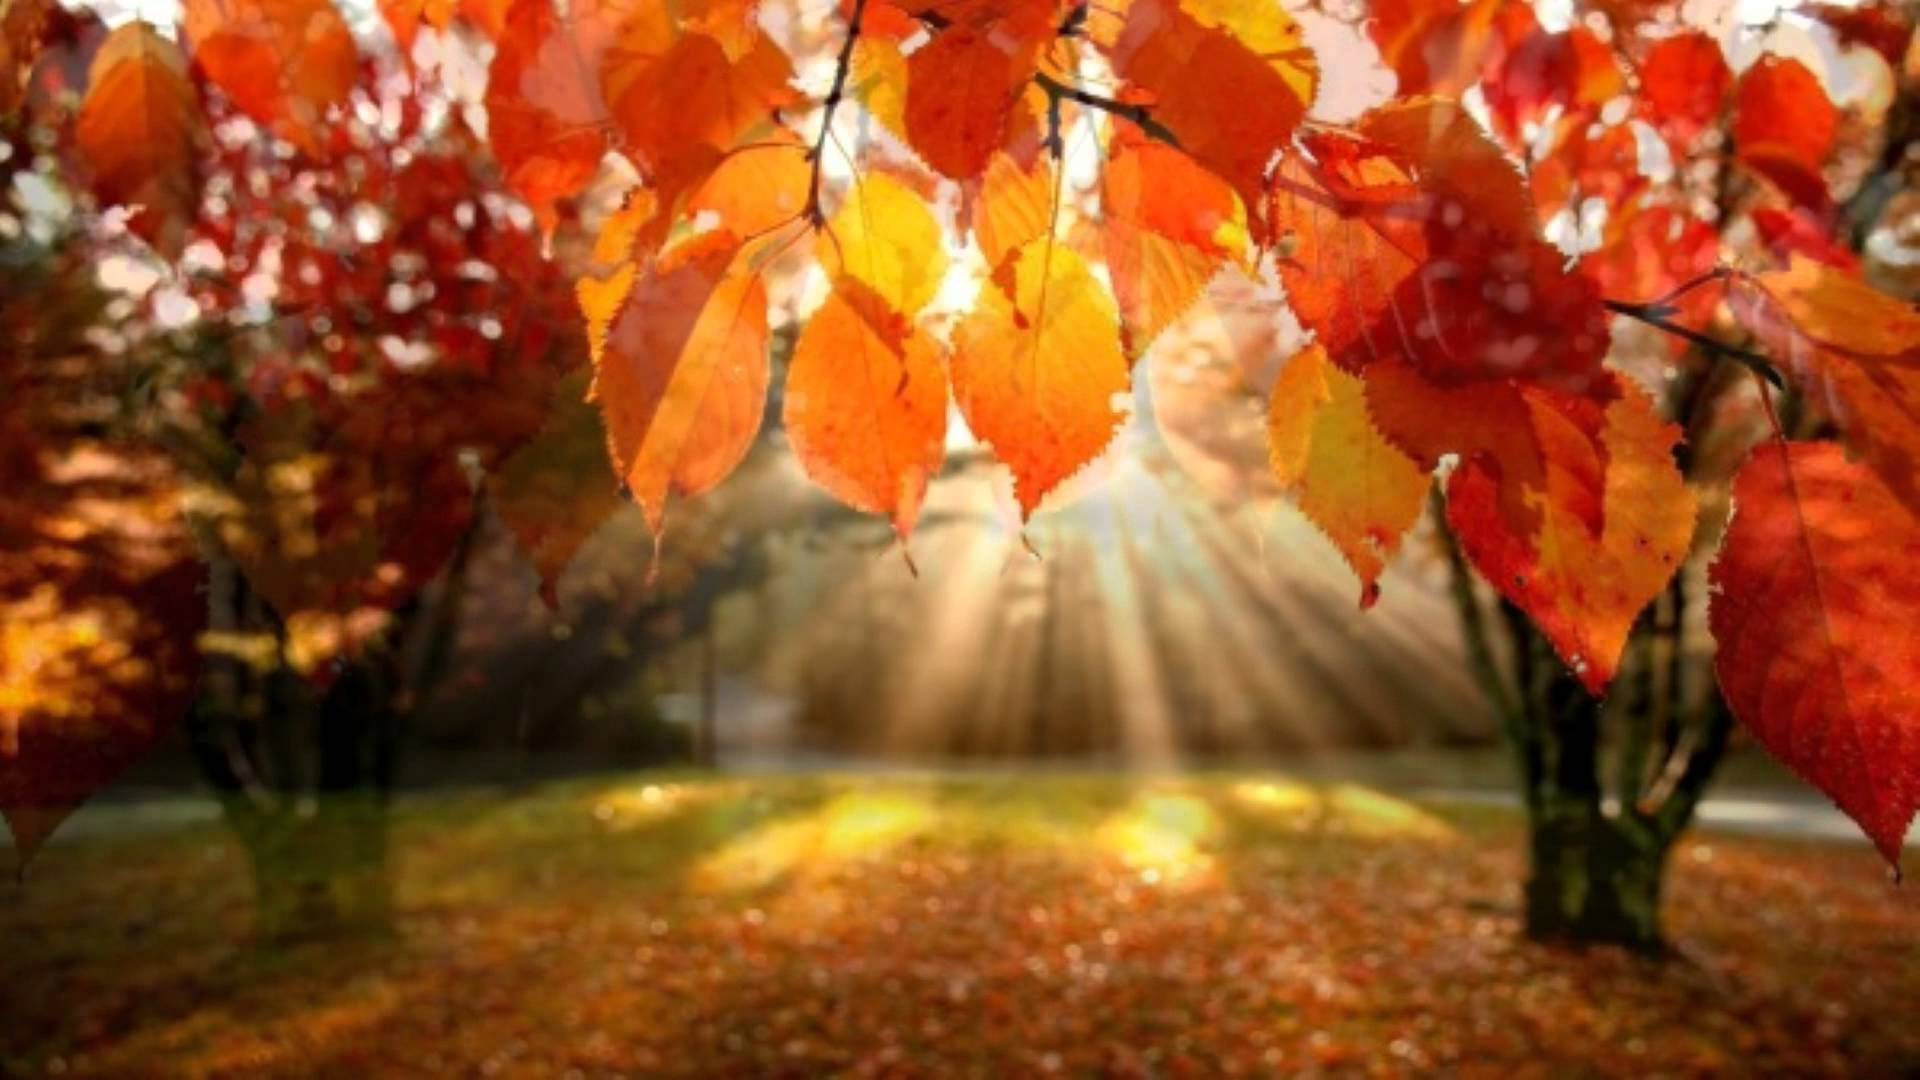 Red leaves - Autumn trees - Autumn leaves - YouTube